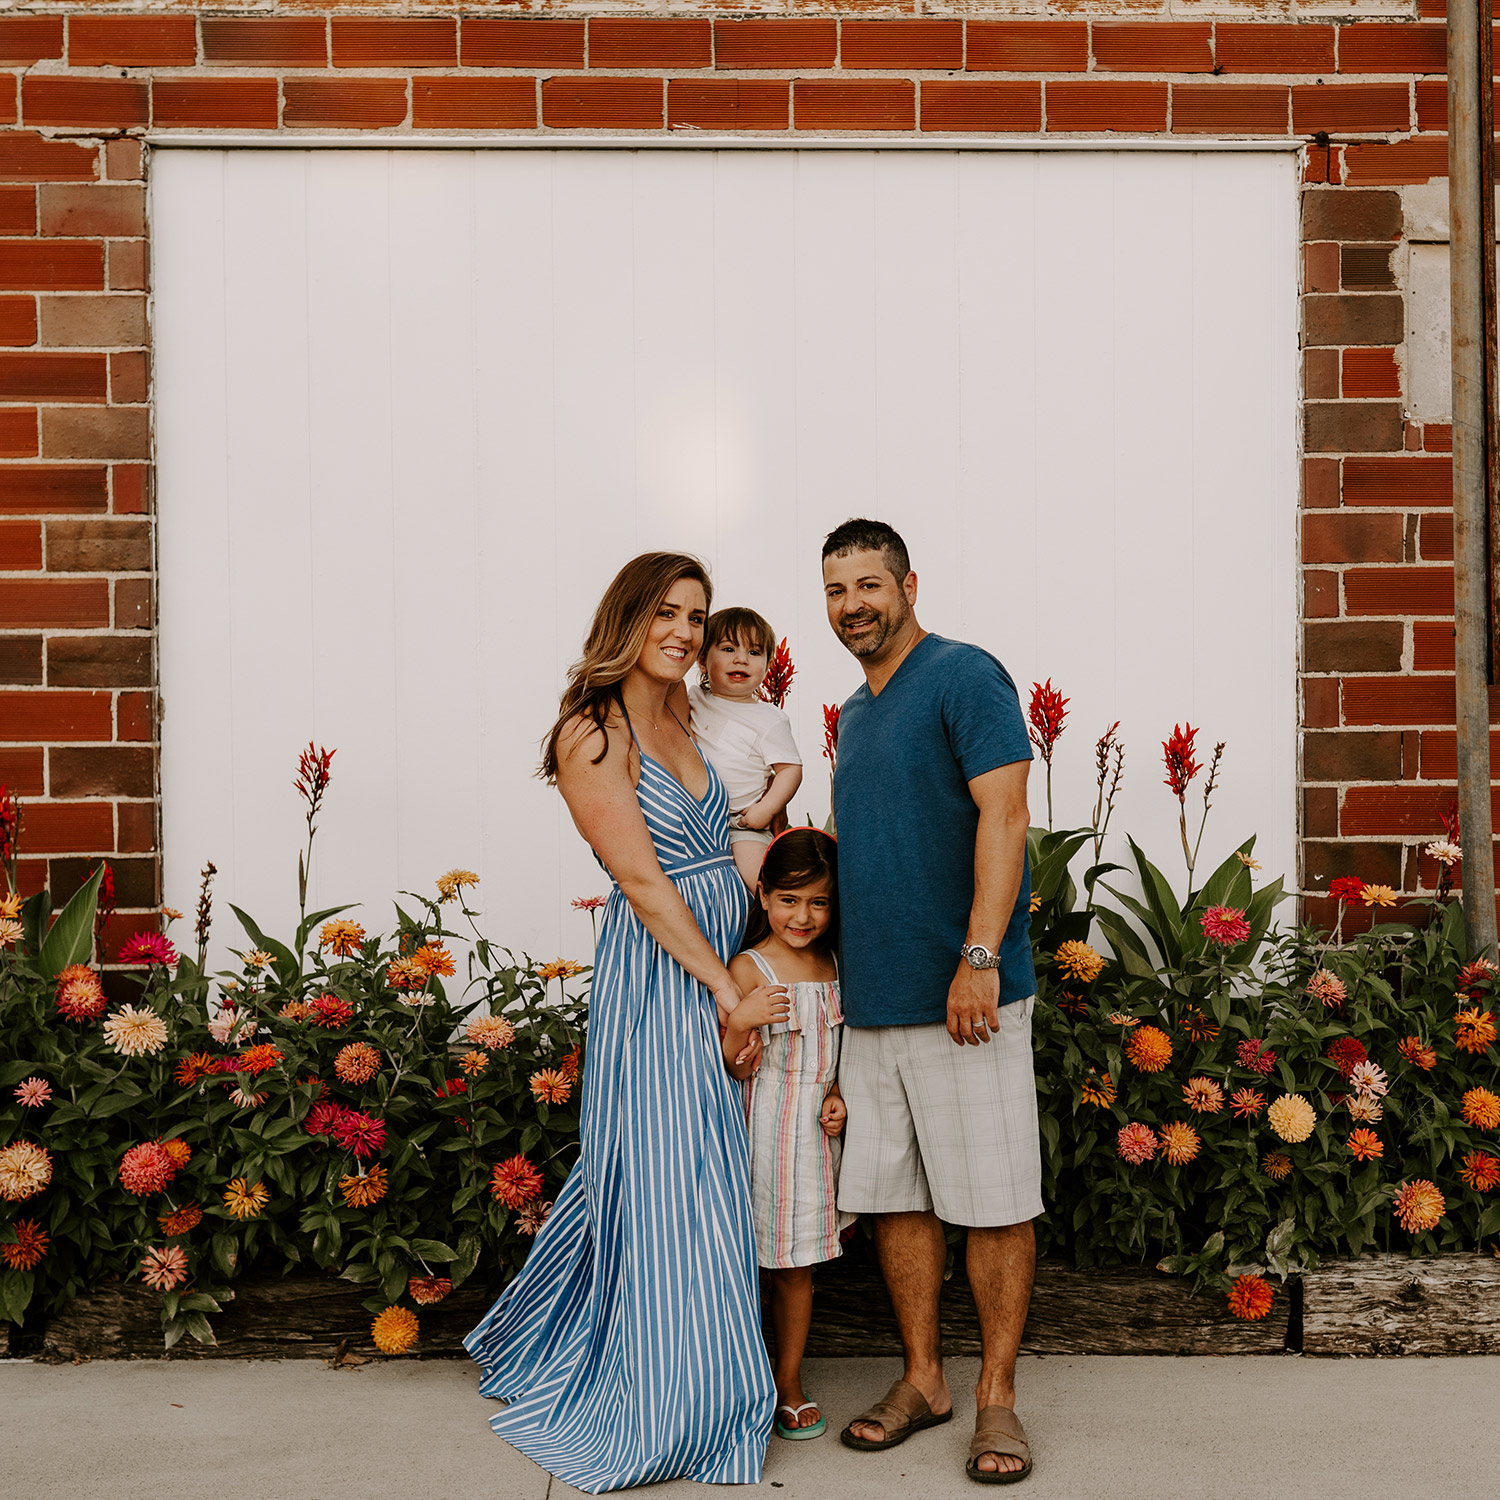 natale-family-standing-in-front-of-flowers-at-frostees-winterset-iowa-raelyn-ramey-photography-179.jpg